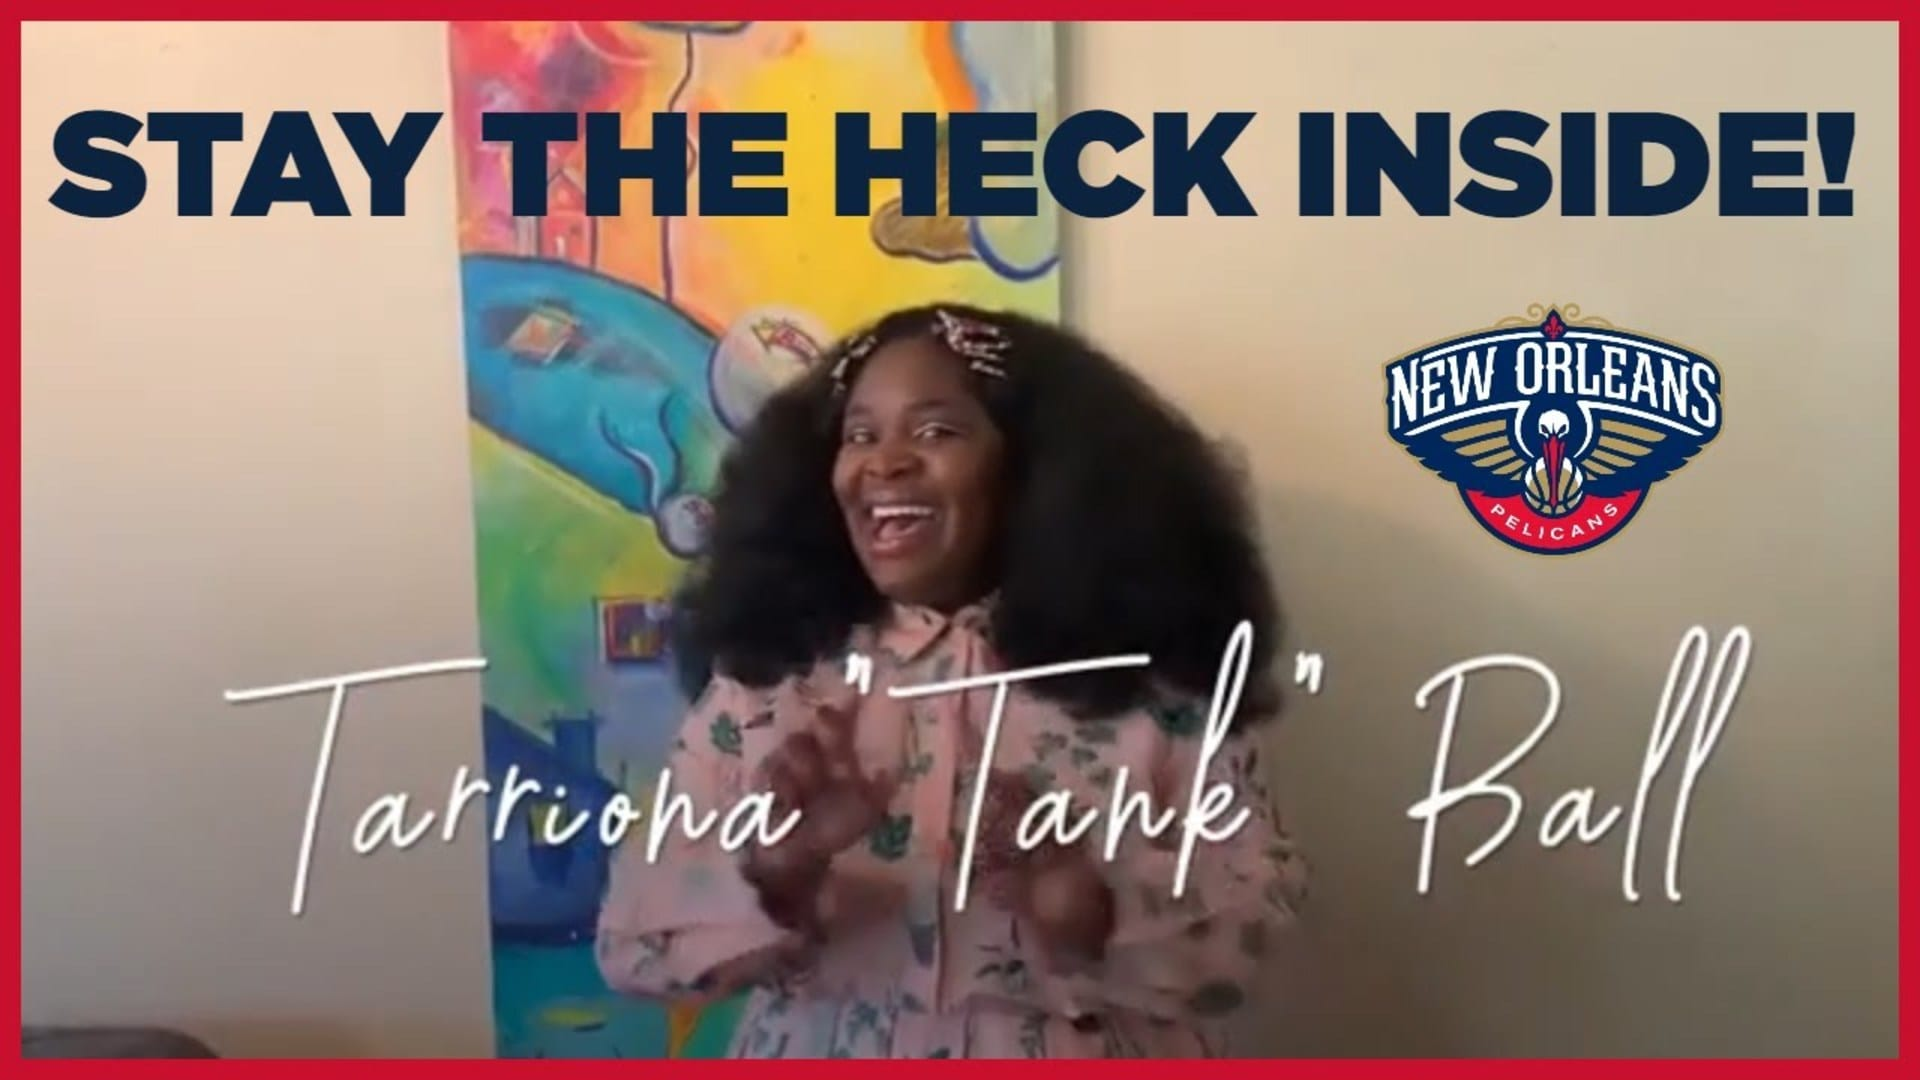 HomeTeamTV: New Orleans artists and friends join the Pelicans in urging fans to stay the heck inside